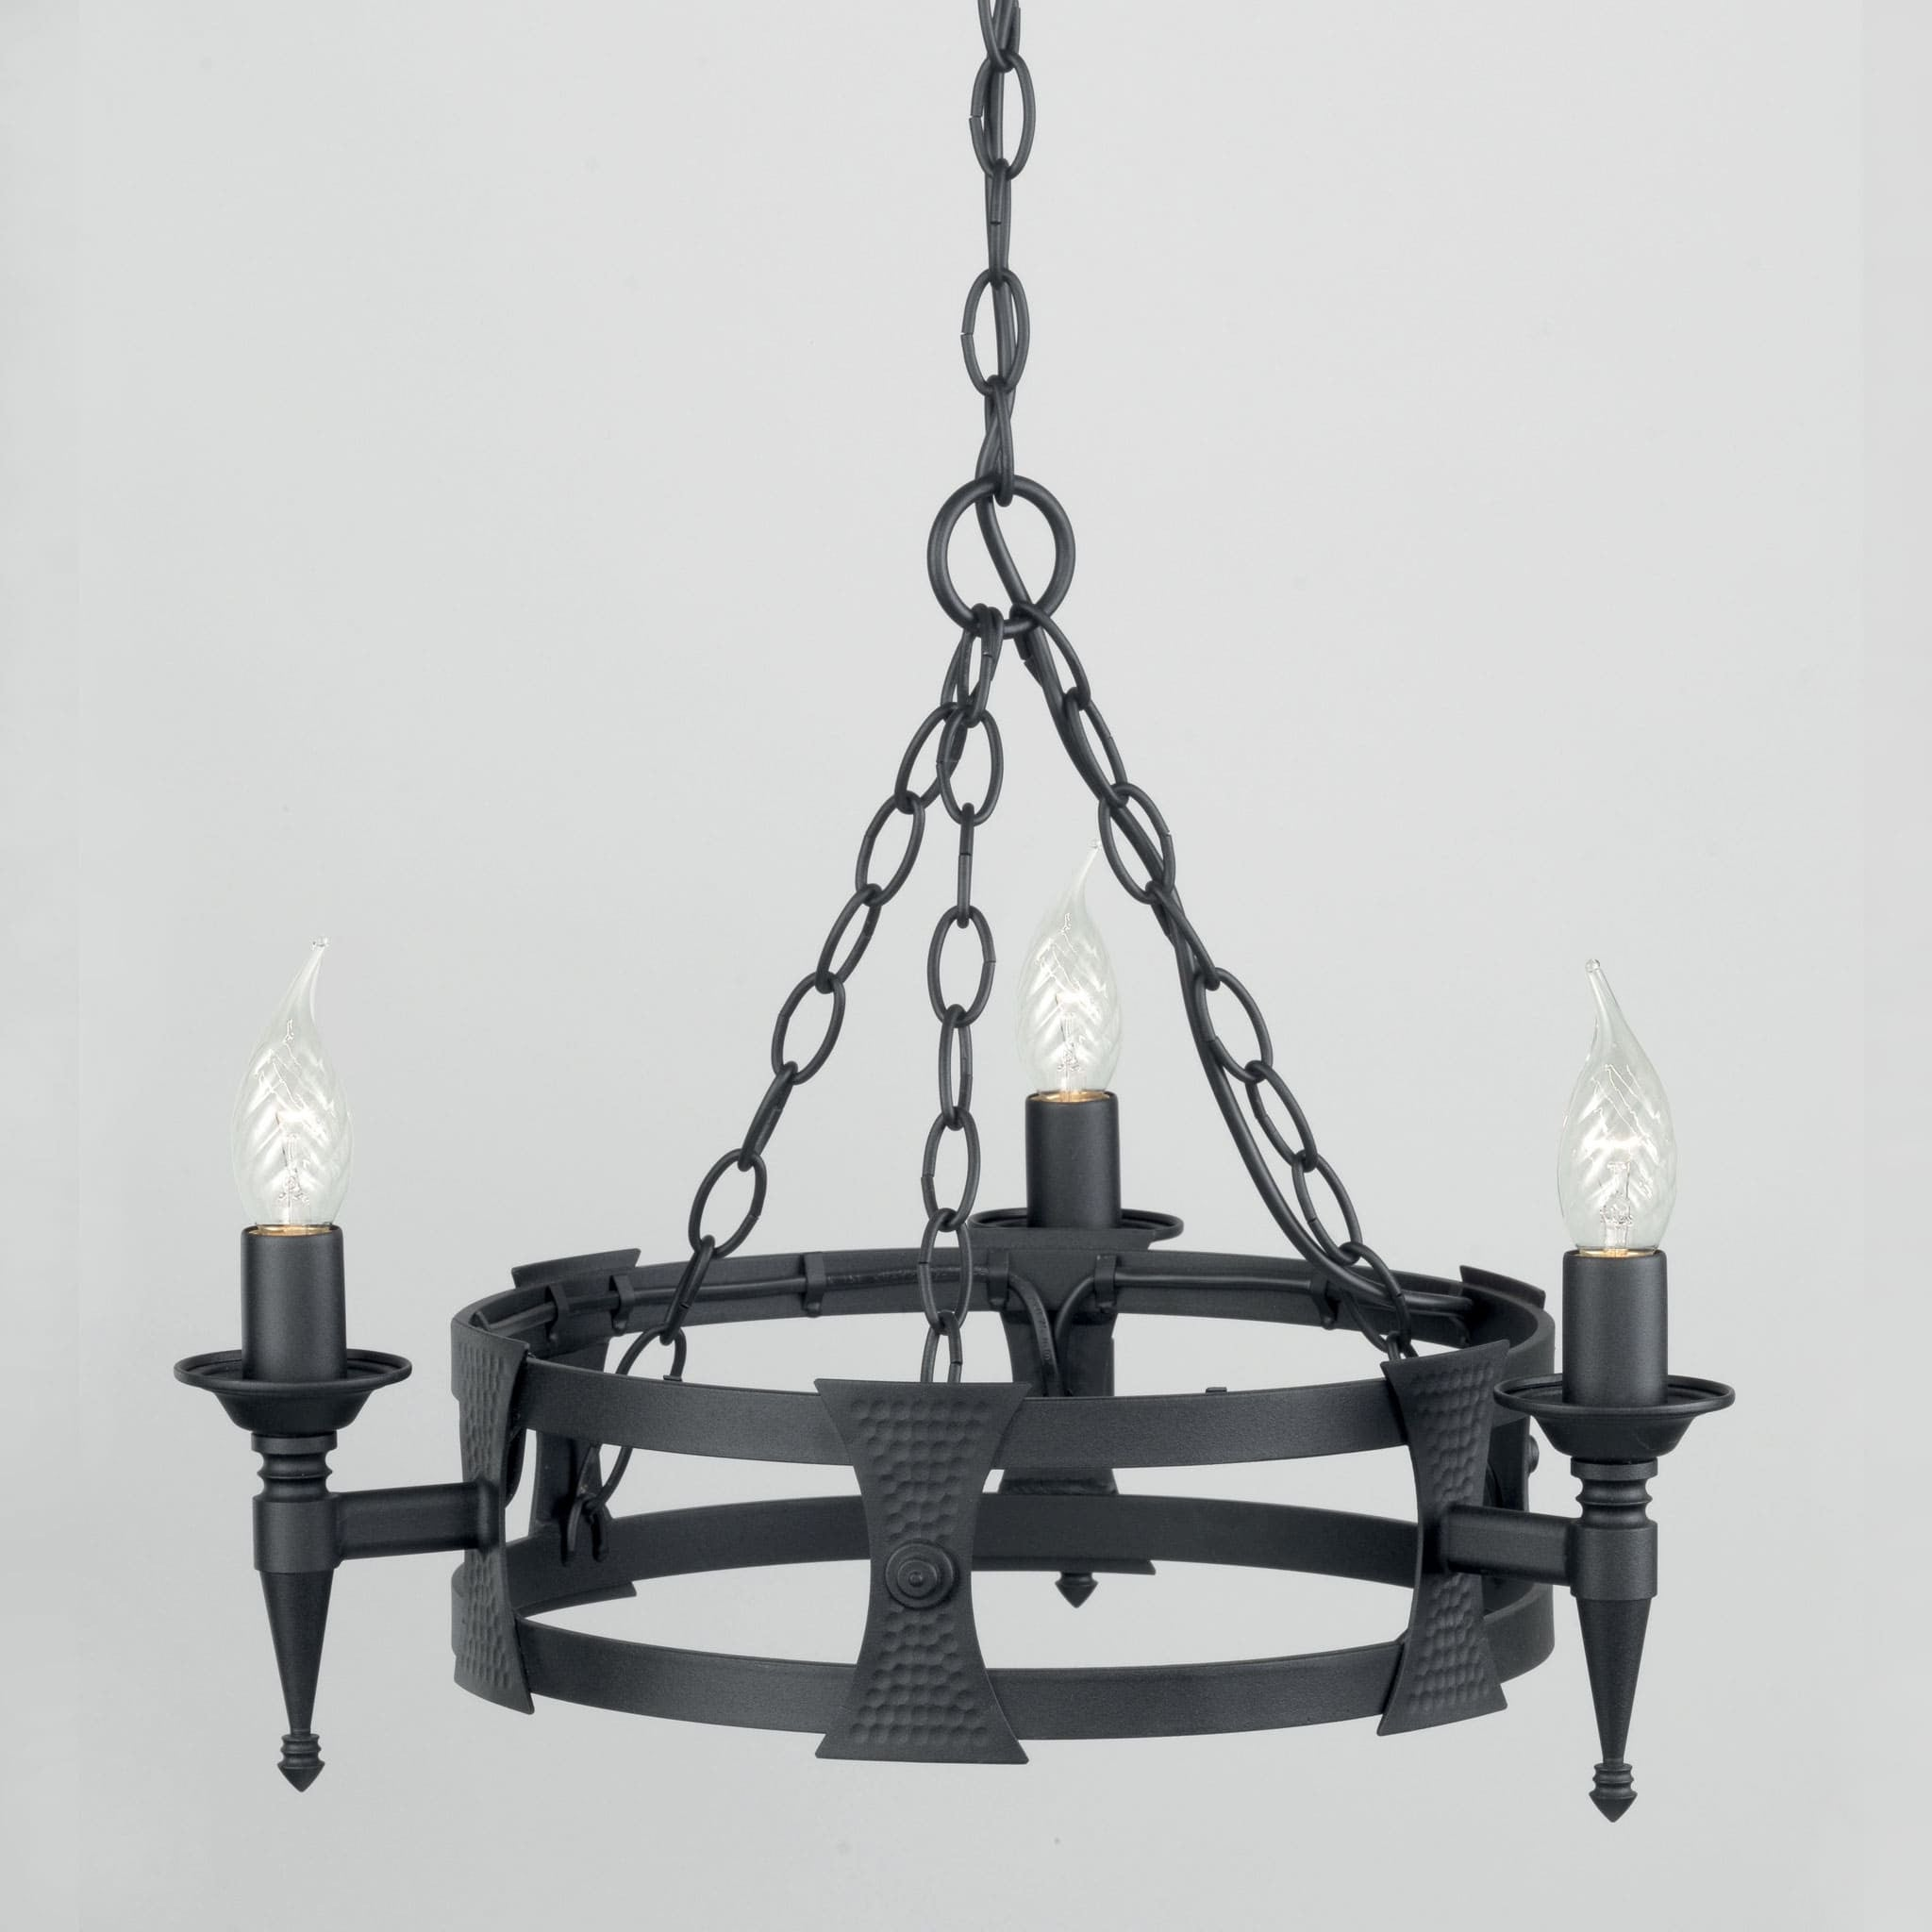 Elstead saxon 3 light black metal candle chandelier chandelier shack elstead saxon 3 light black metal candle chandelier sax3 blk aloadofball Gallery